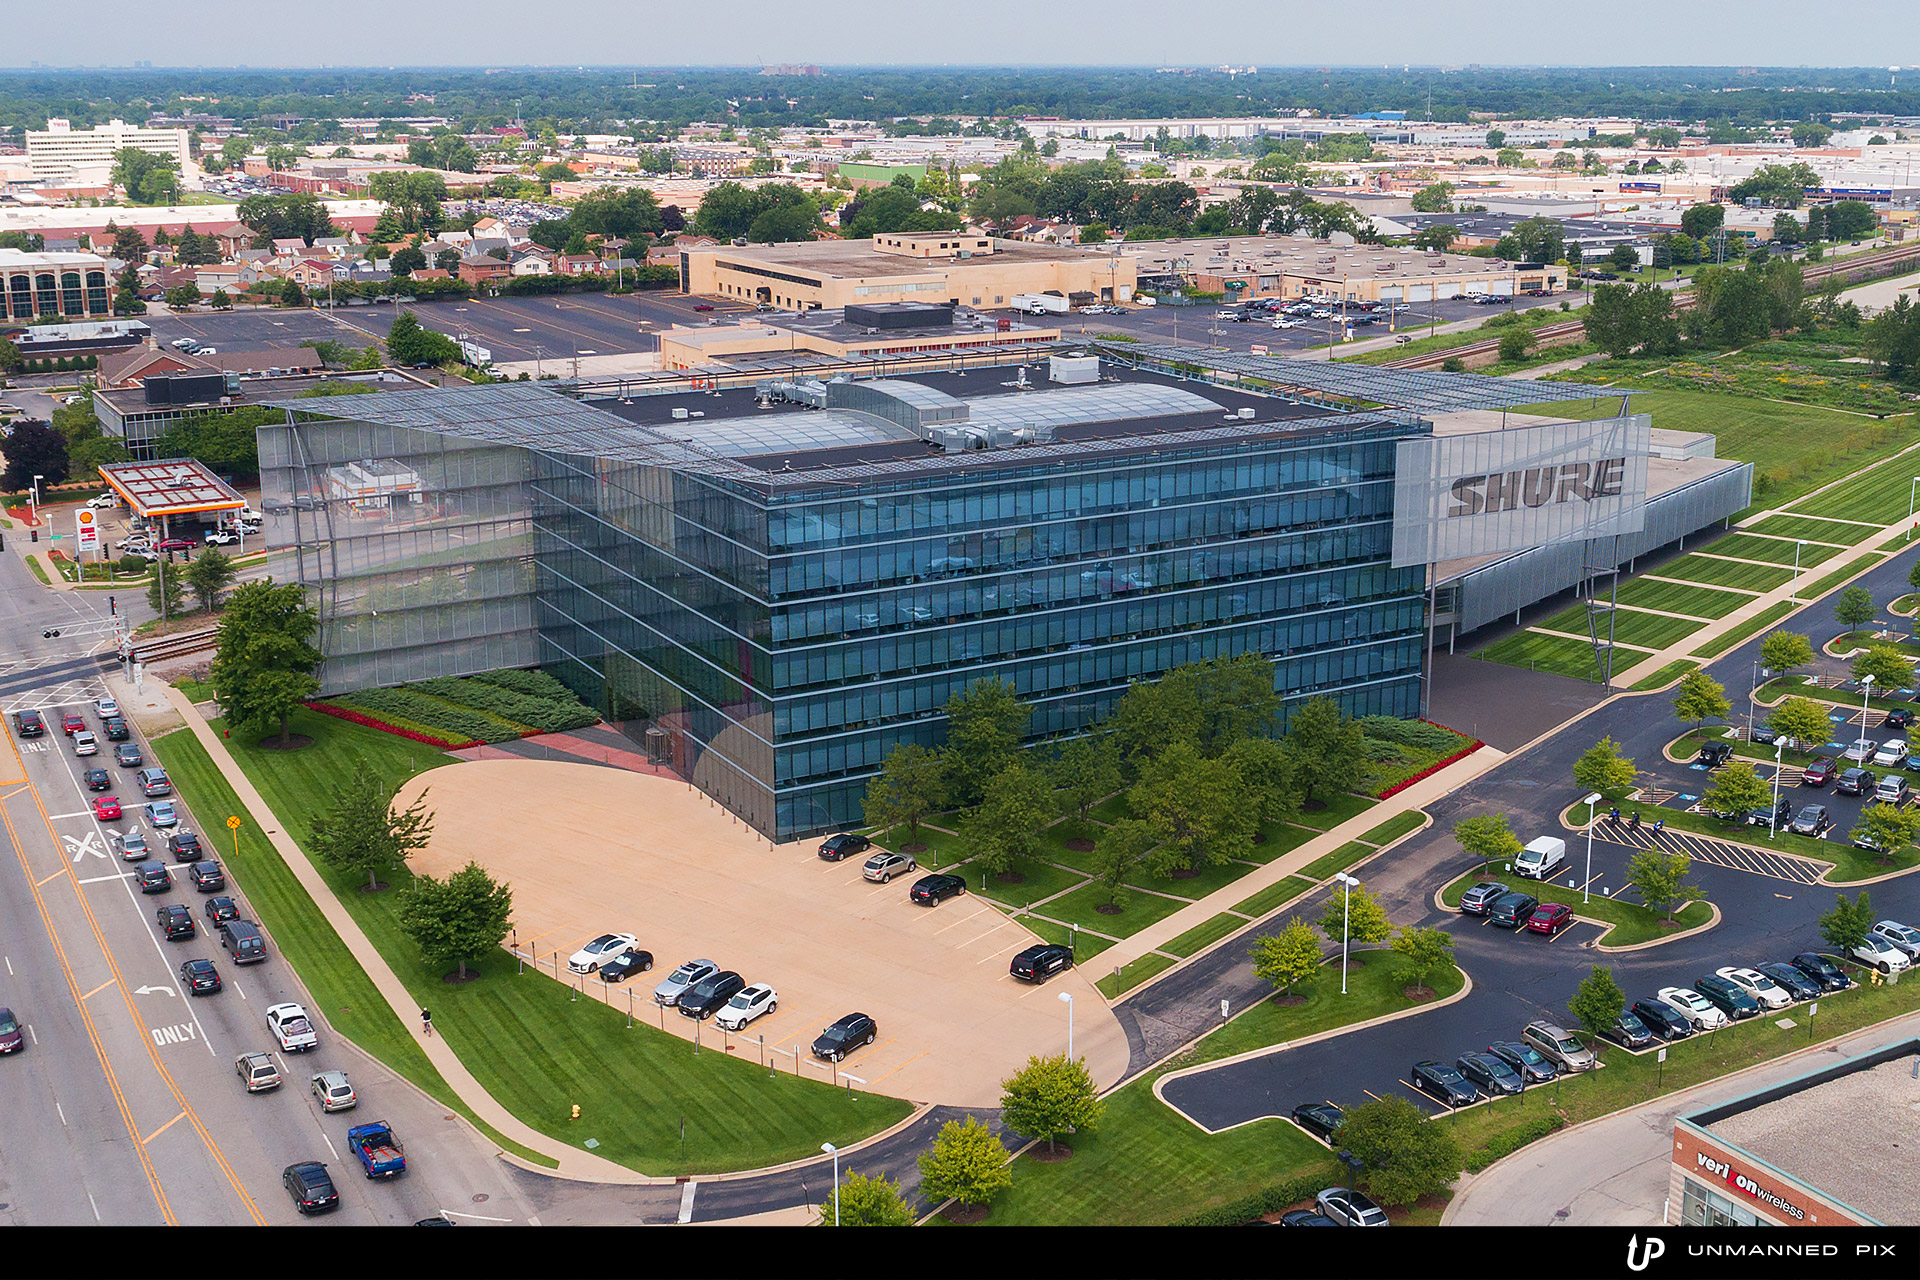 aerial view of Shure building, facing north west, photographed by jacob rosenfeld with unmannedpix.com